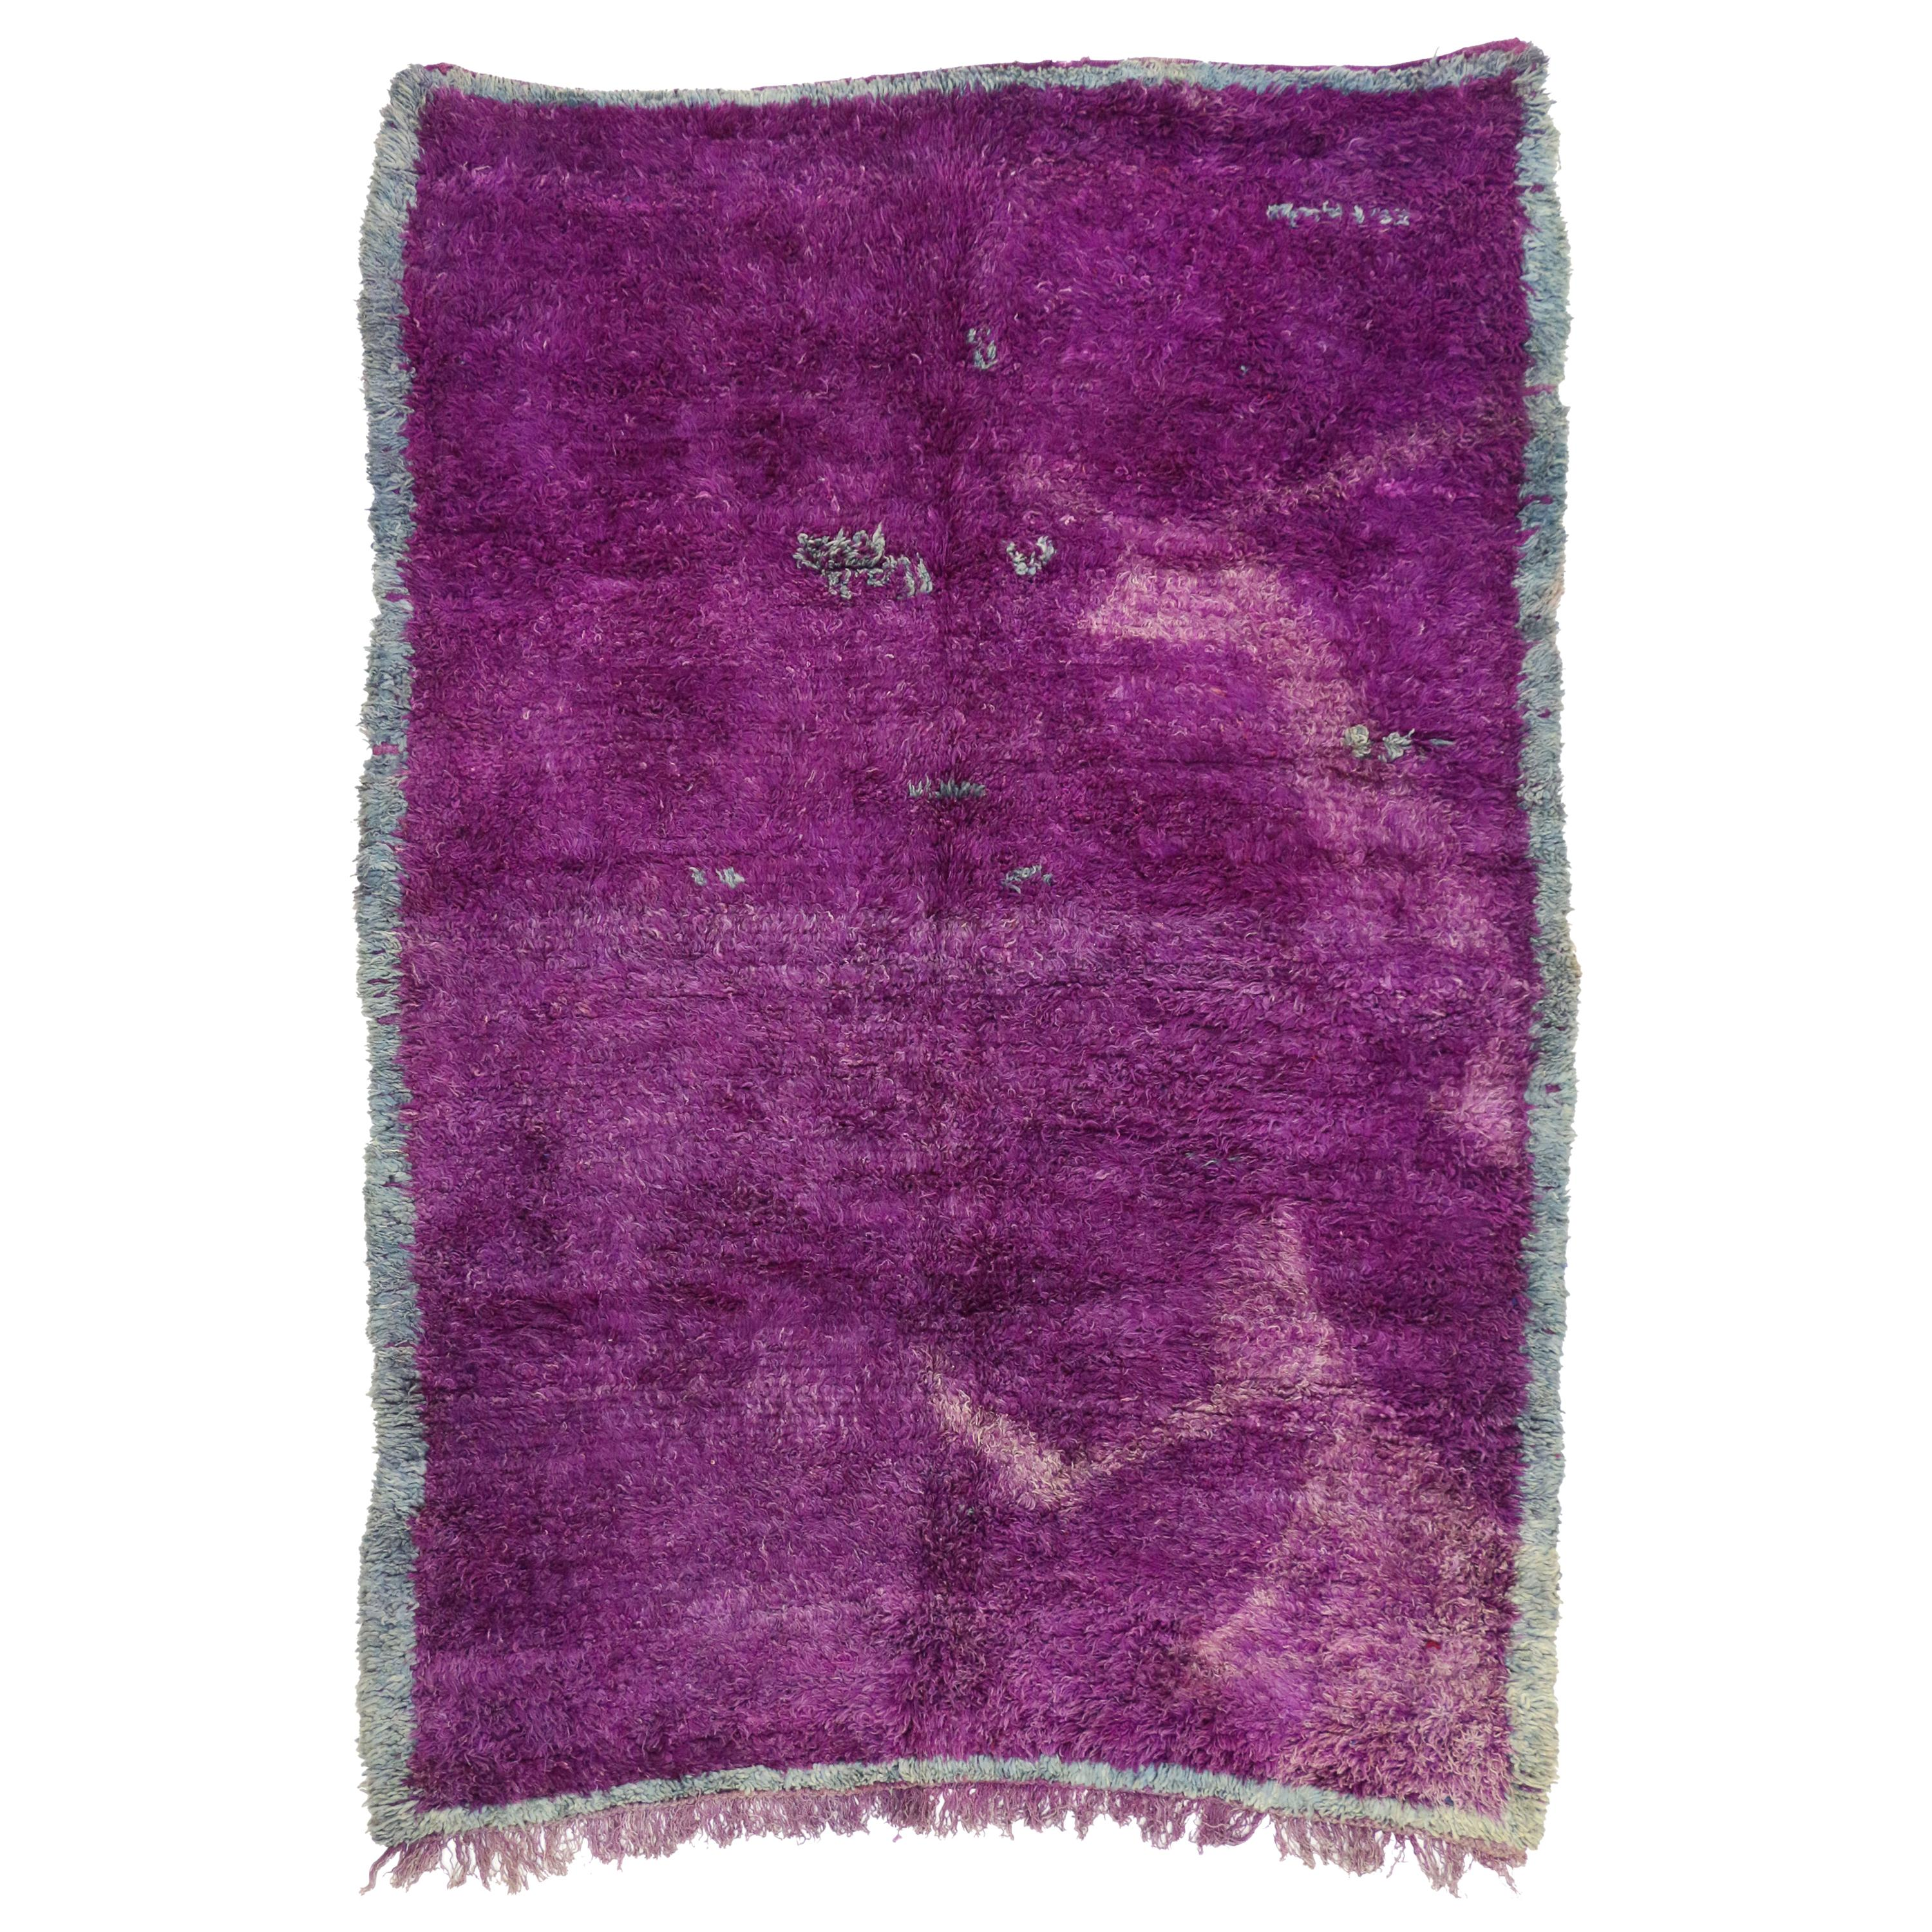 Vintage Berber Purple Moroccan Rug with Post-Modern Memphis Style